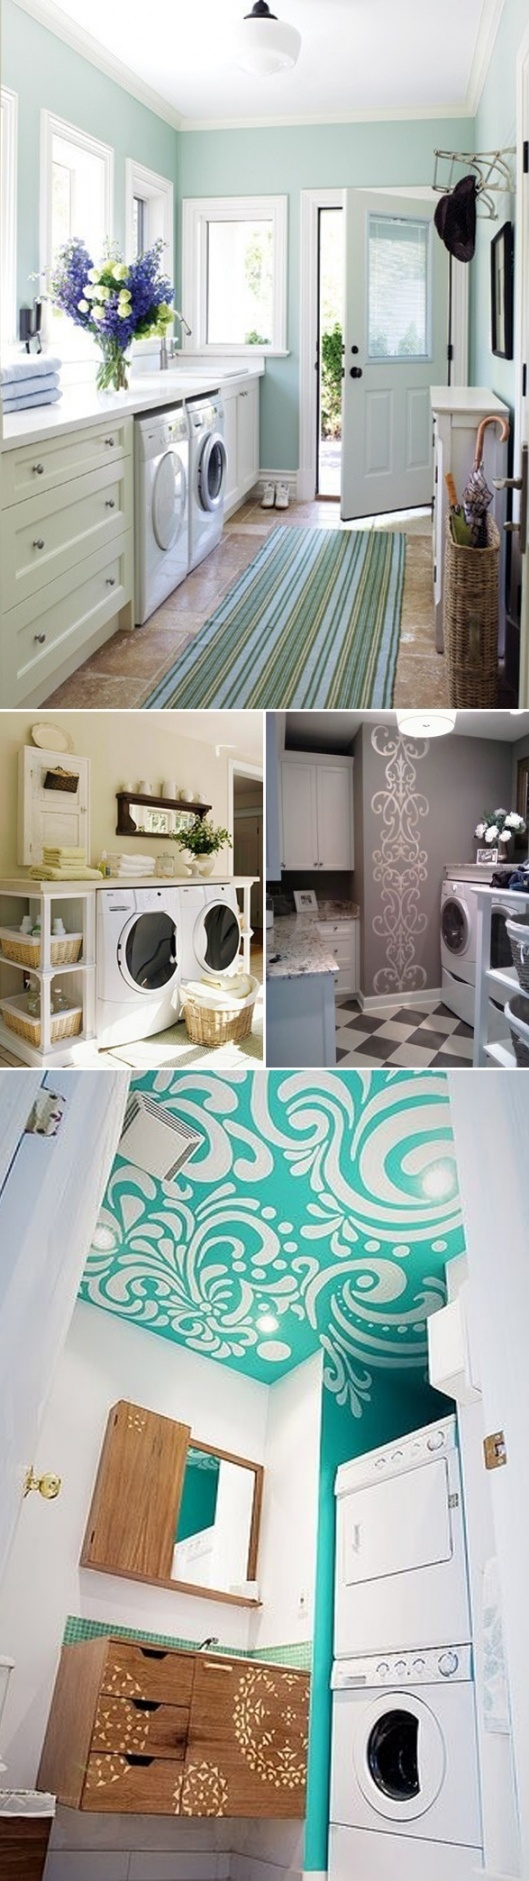 Own my own home how come laundry rooms can also be nice like this!